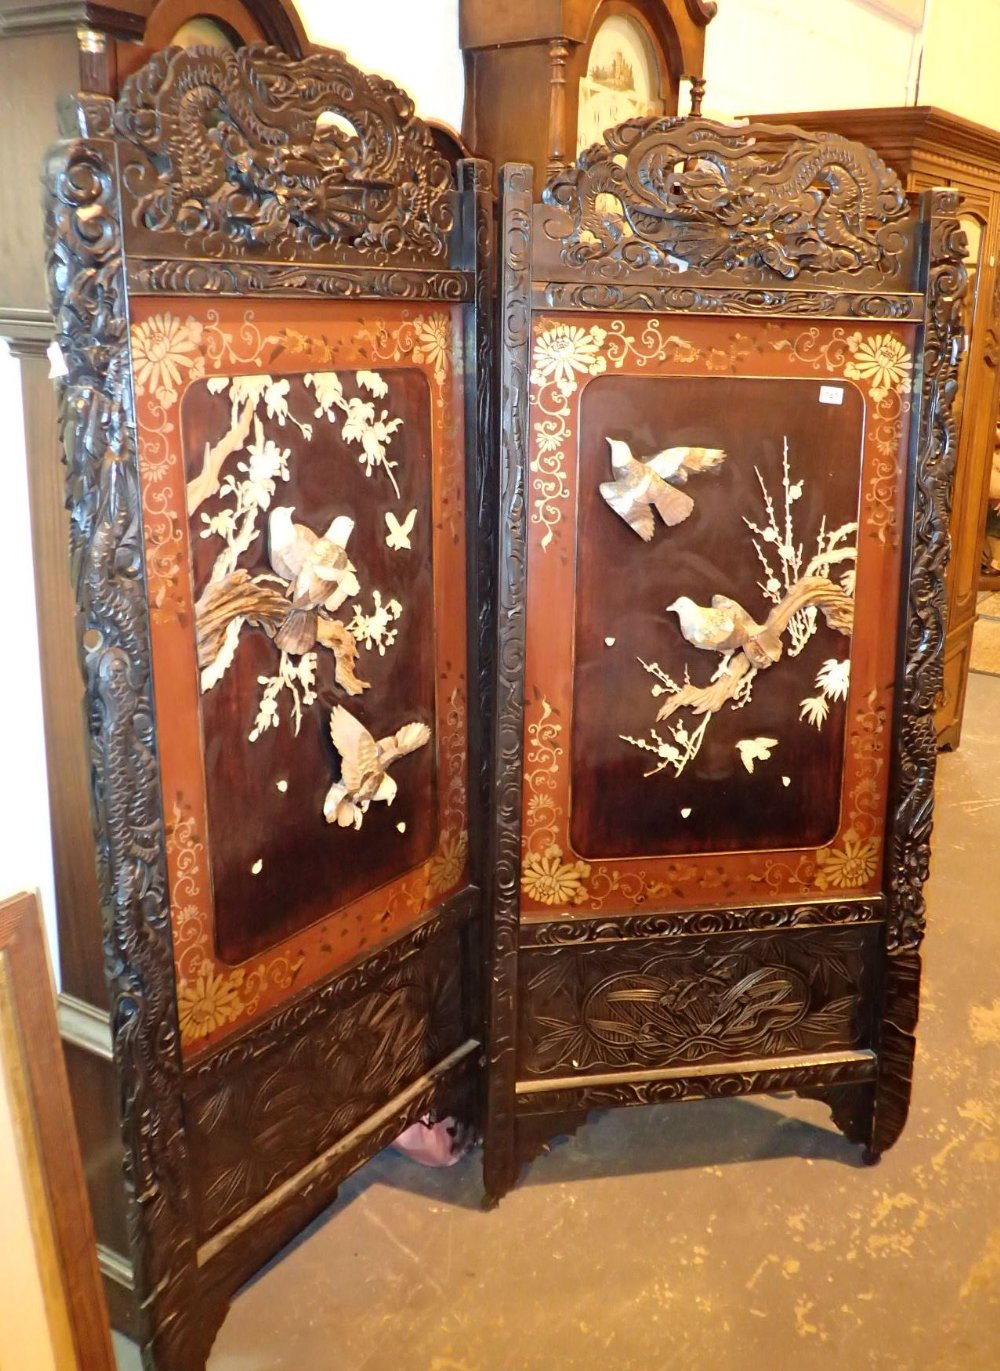 Lot 747 - Large folding heavily carved Oriental screen with mother of pearl bird decoration 179 x 79 x 2 cm